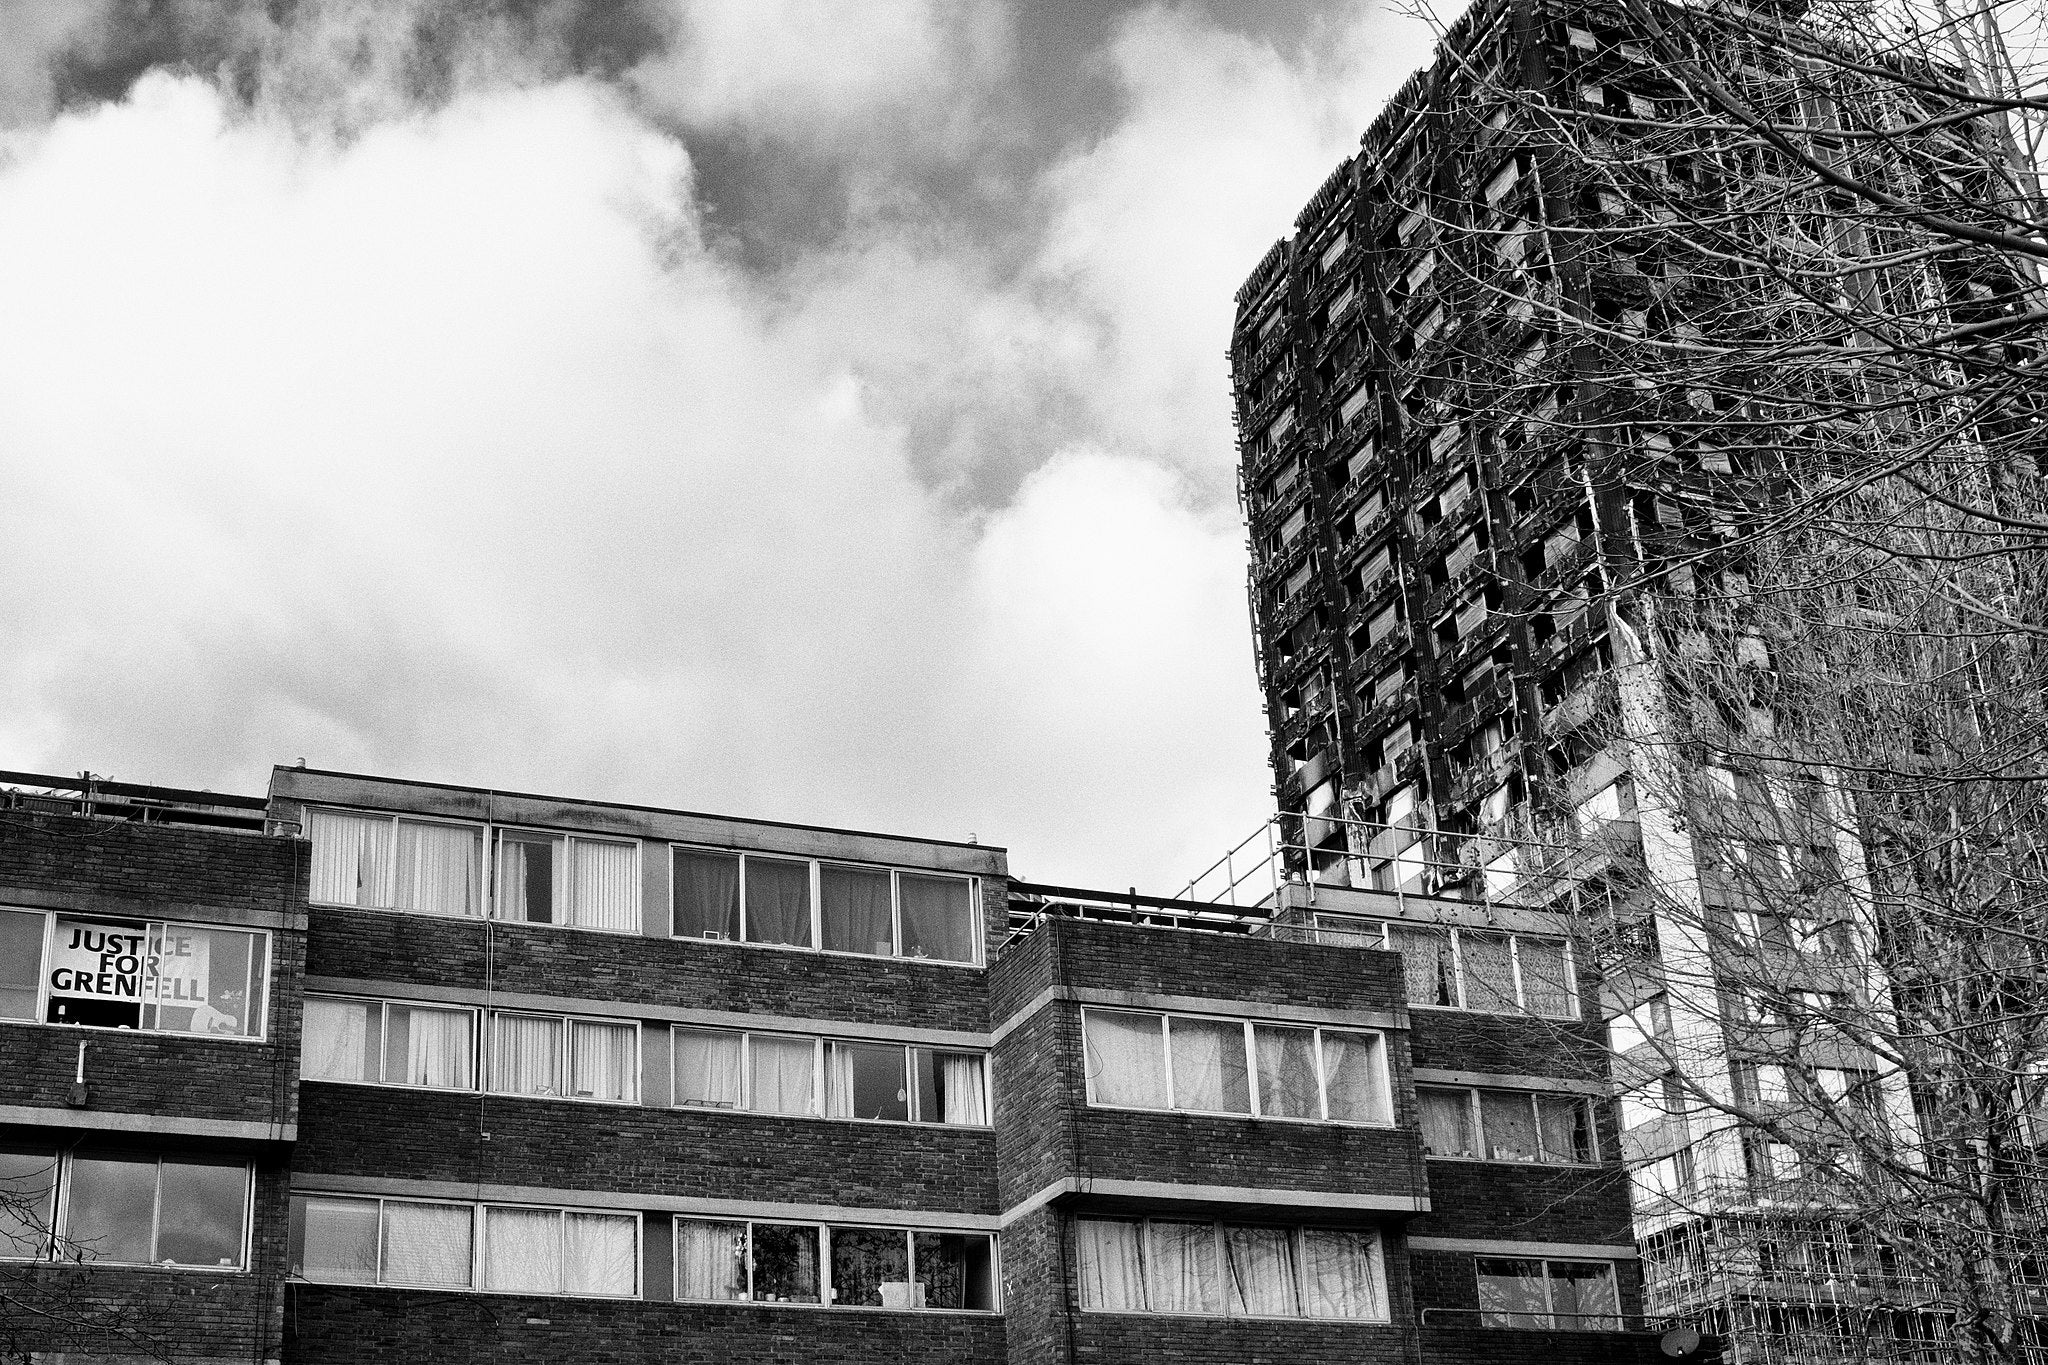 Grenfell Tower, after the fire. A 'Justice for Grenfell' poster in the window or a nearby flat.